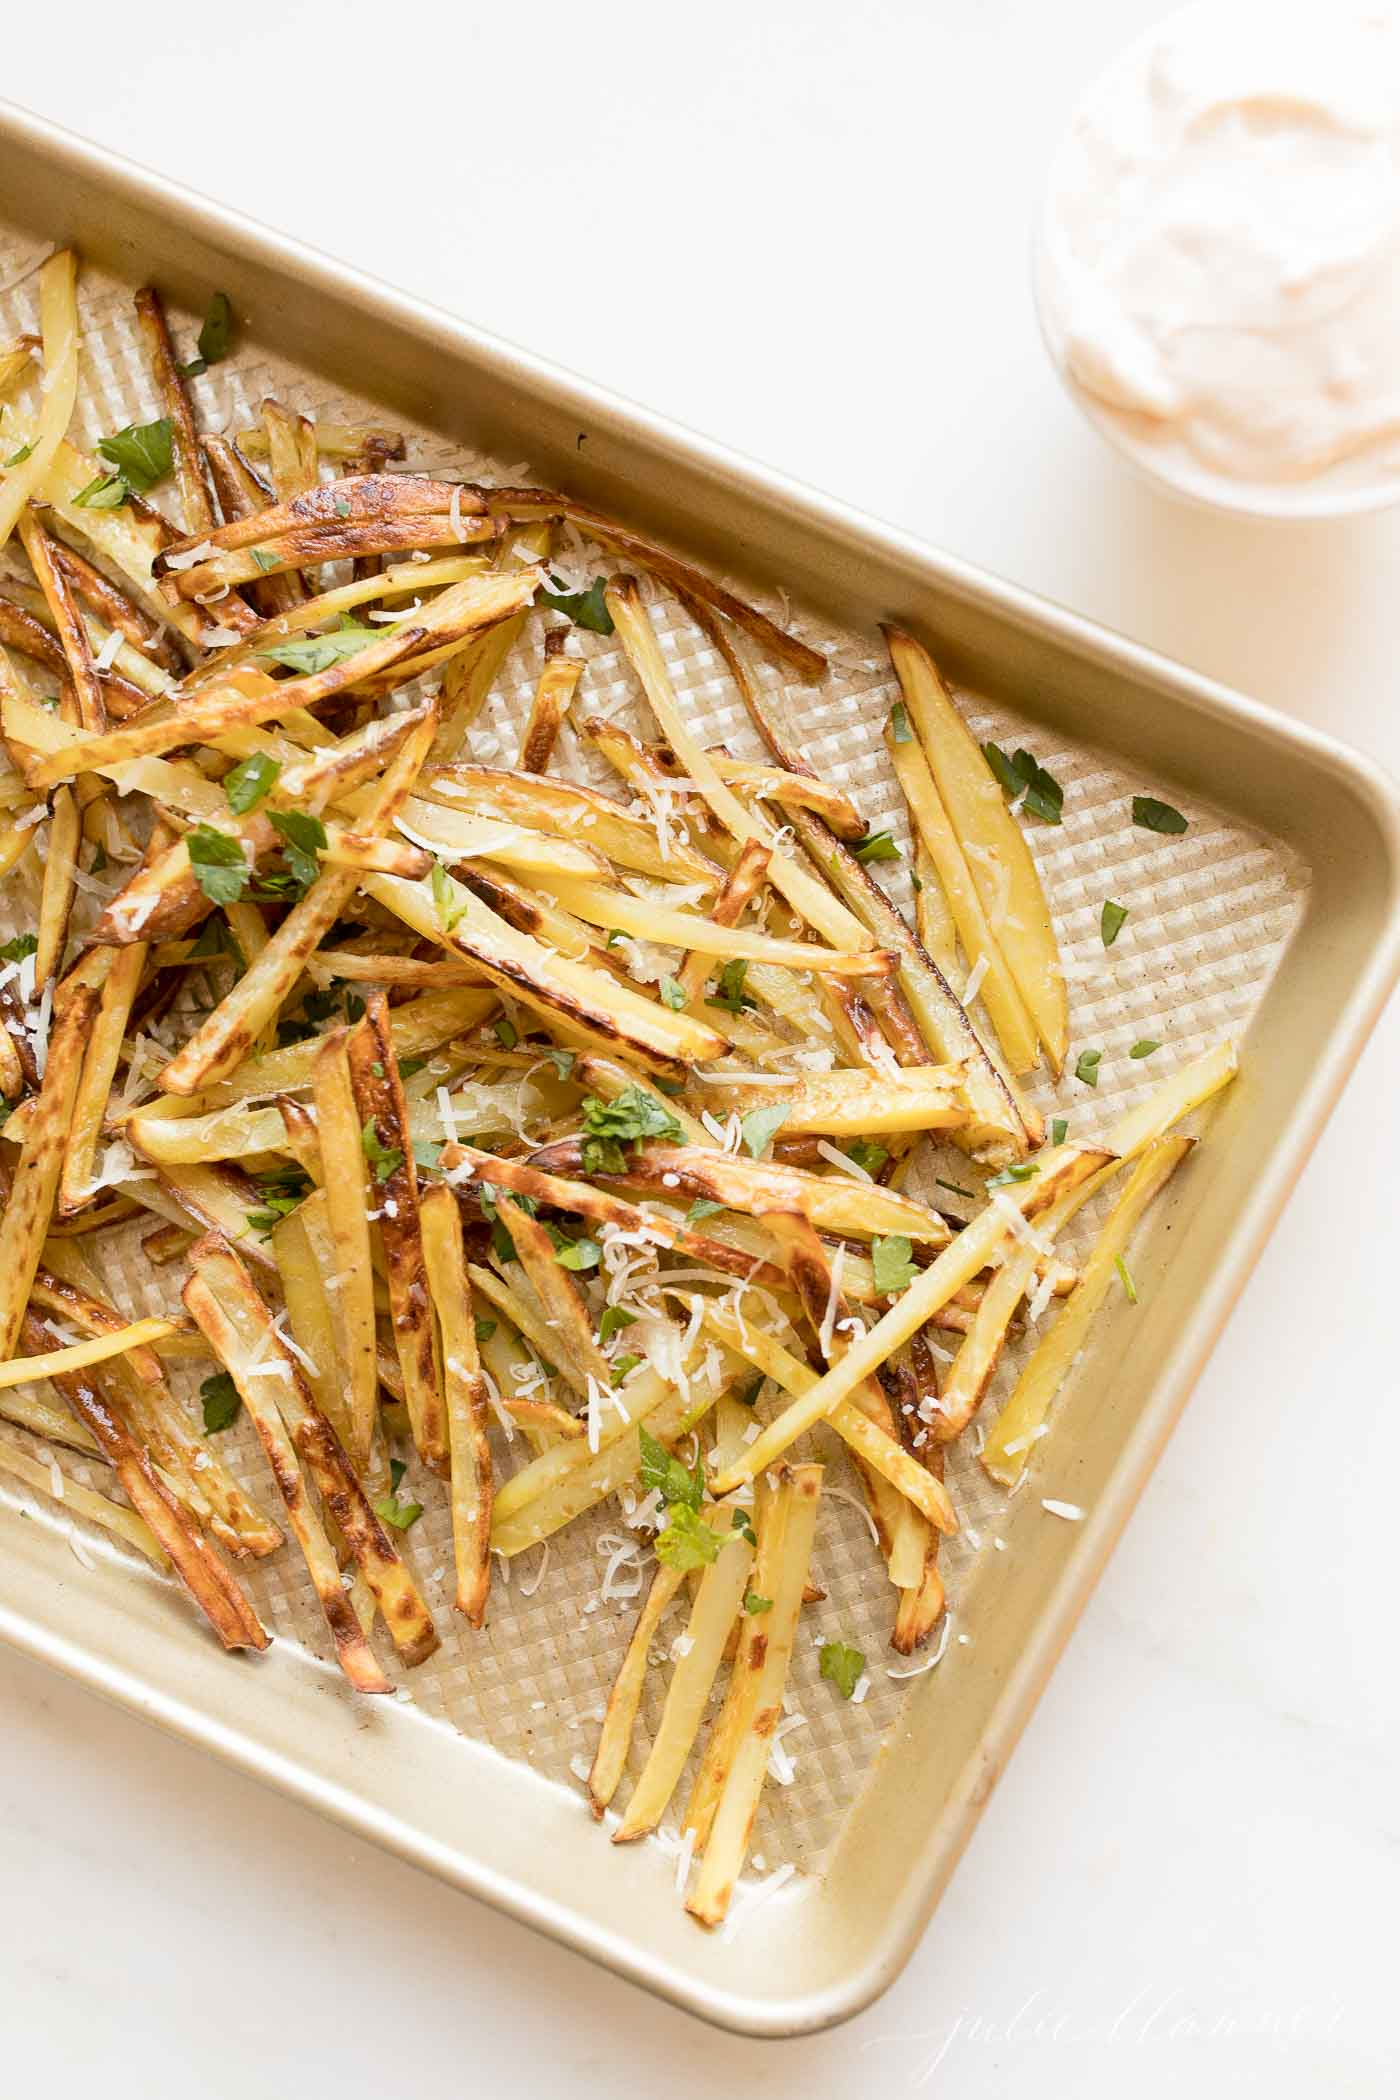 Truffle fries on a sheet. pan, topped with parmesan cheese and parsley.